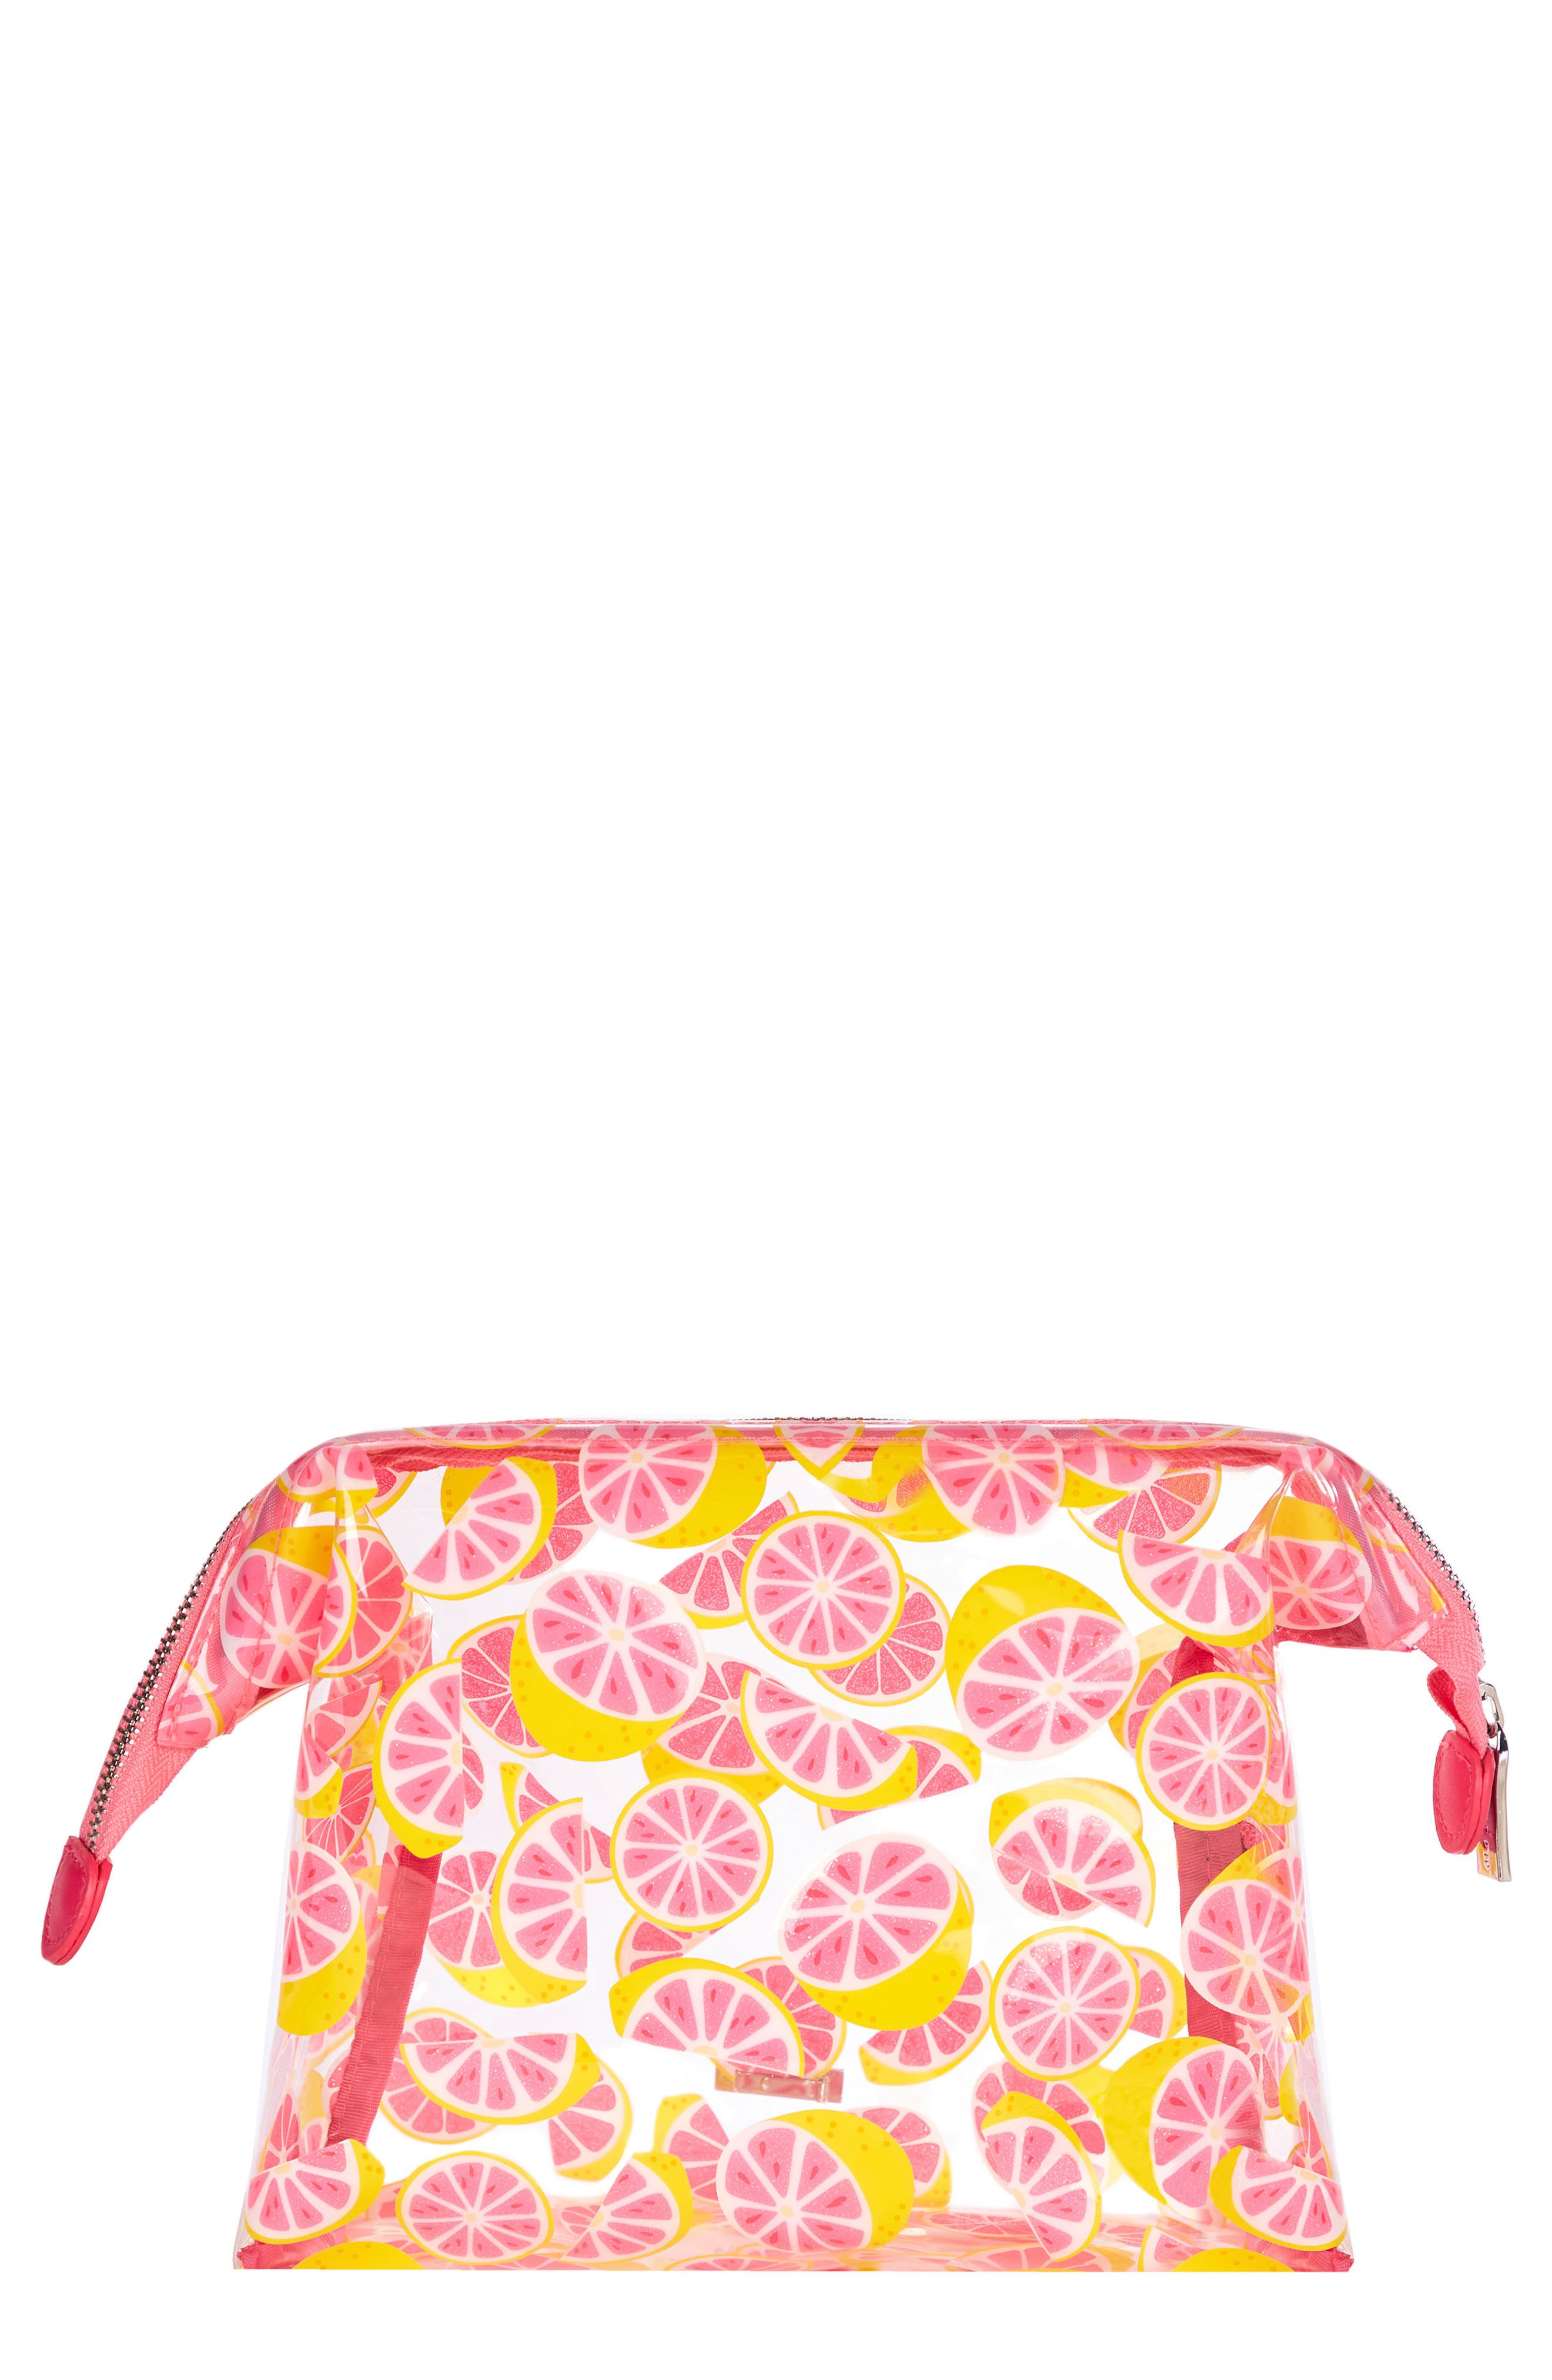 Skinny Dip Glitter Grapefruit Cosmetics Case,                         Main,                         color, No Color